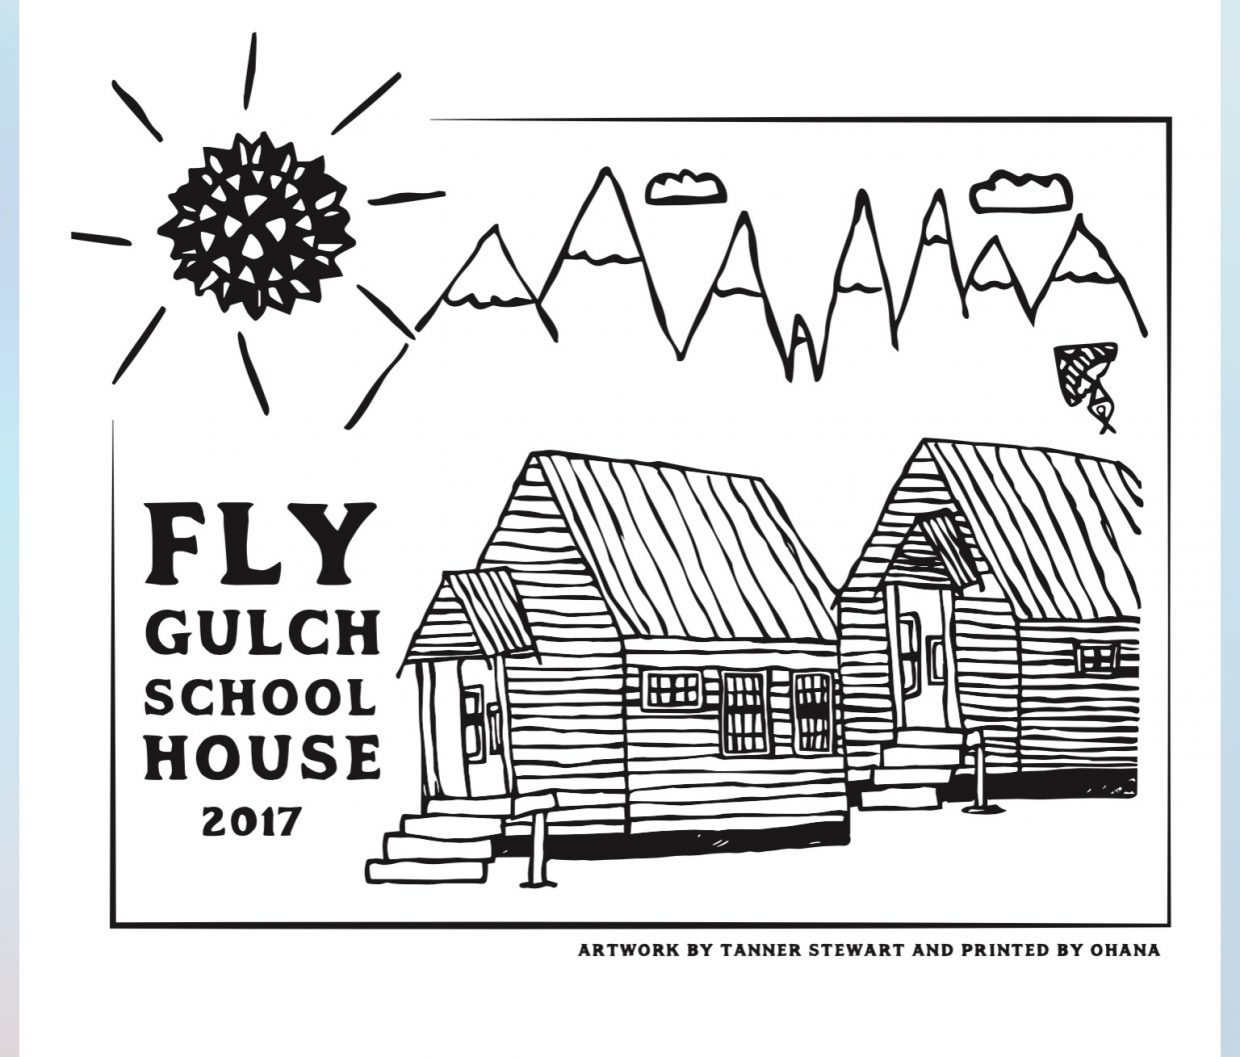 Strawberry Park Elementary fifth grader Tanner Stewart designed artwork that will be turned into a shirt sold by Ohana to benefit the Fly Gulch School House project.